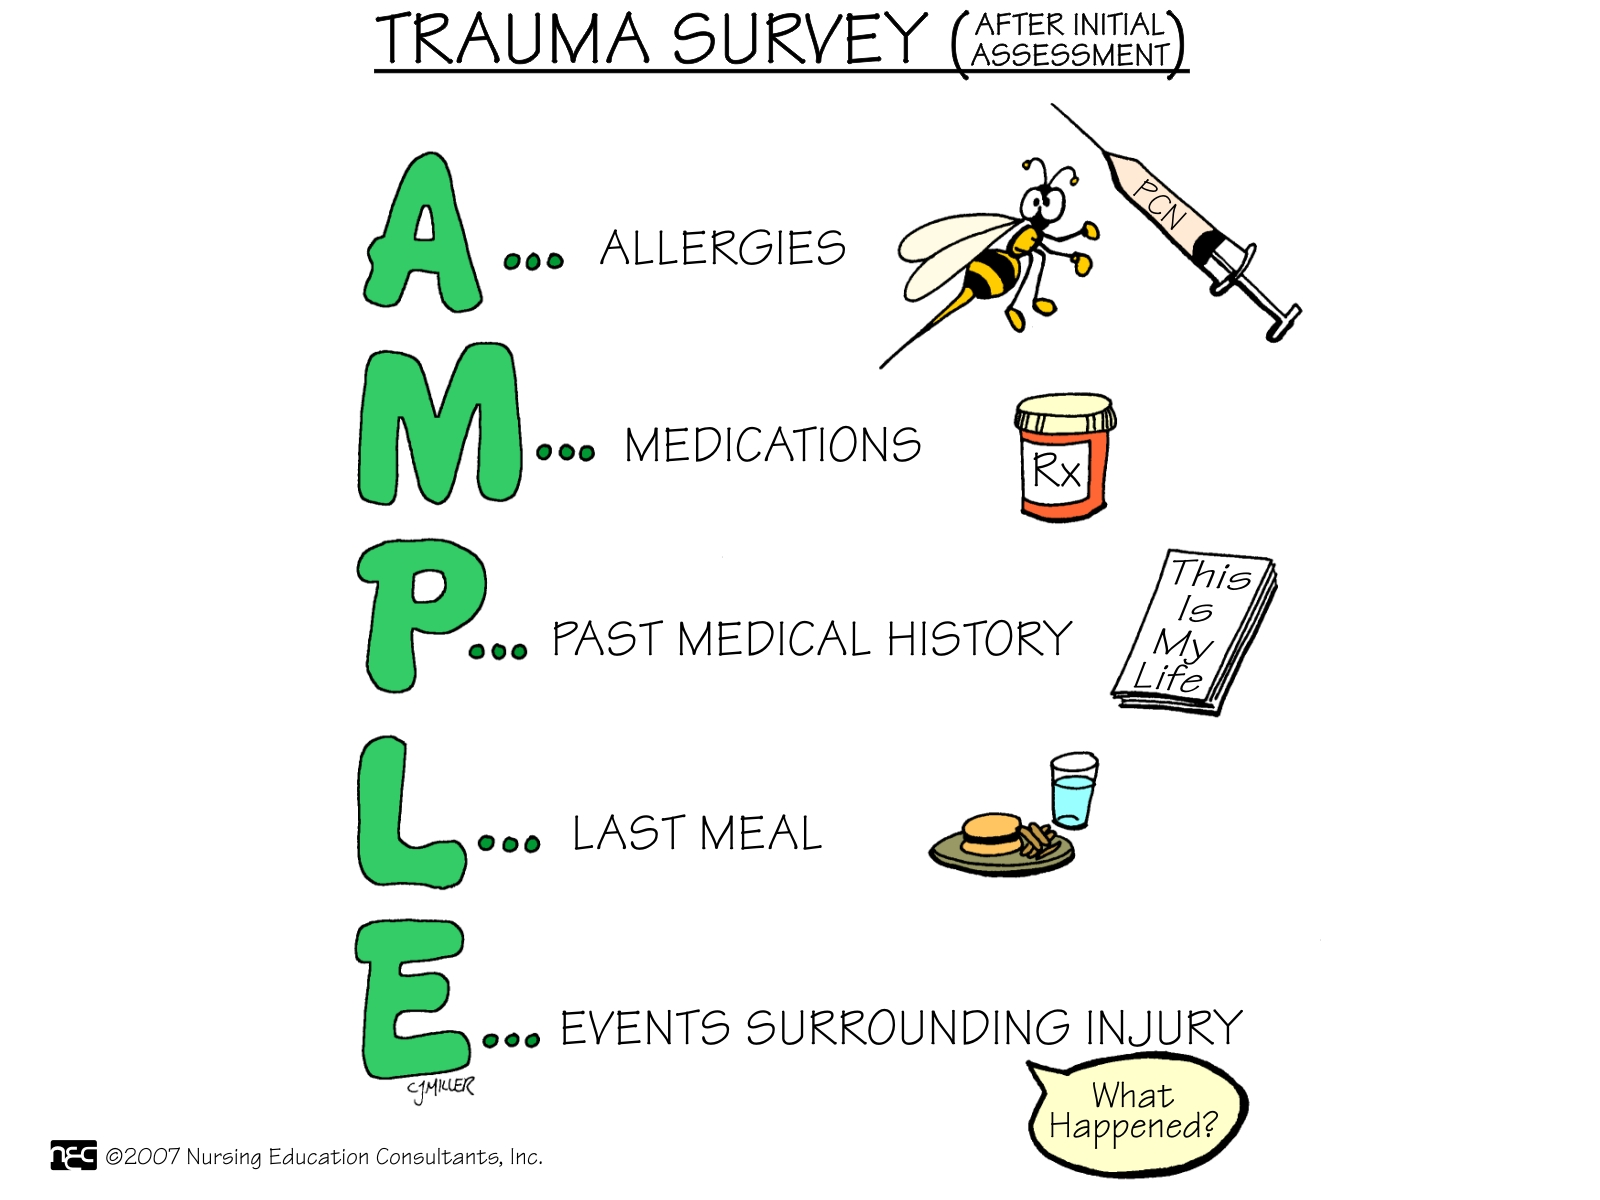 trauma nursing care study b paper A declining gcs is concerning in any setting and should prompt assessment of   if a trauma patient has a gcs of  8 and there is clinical concern that they are.